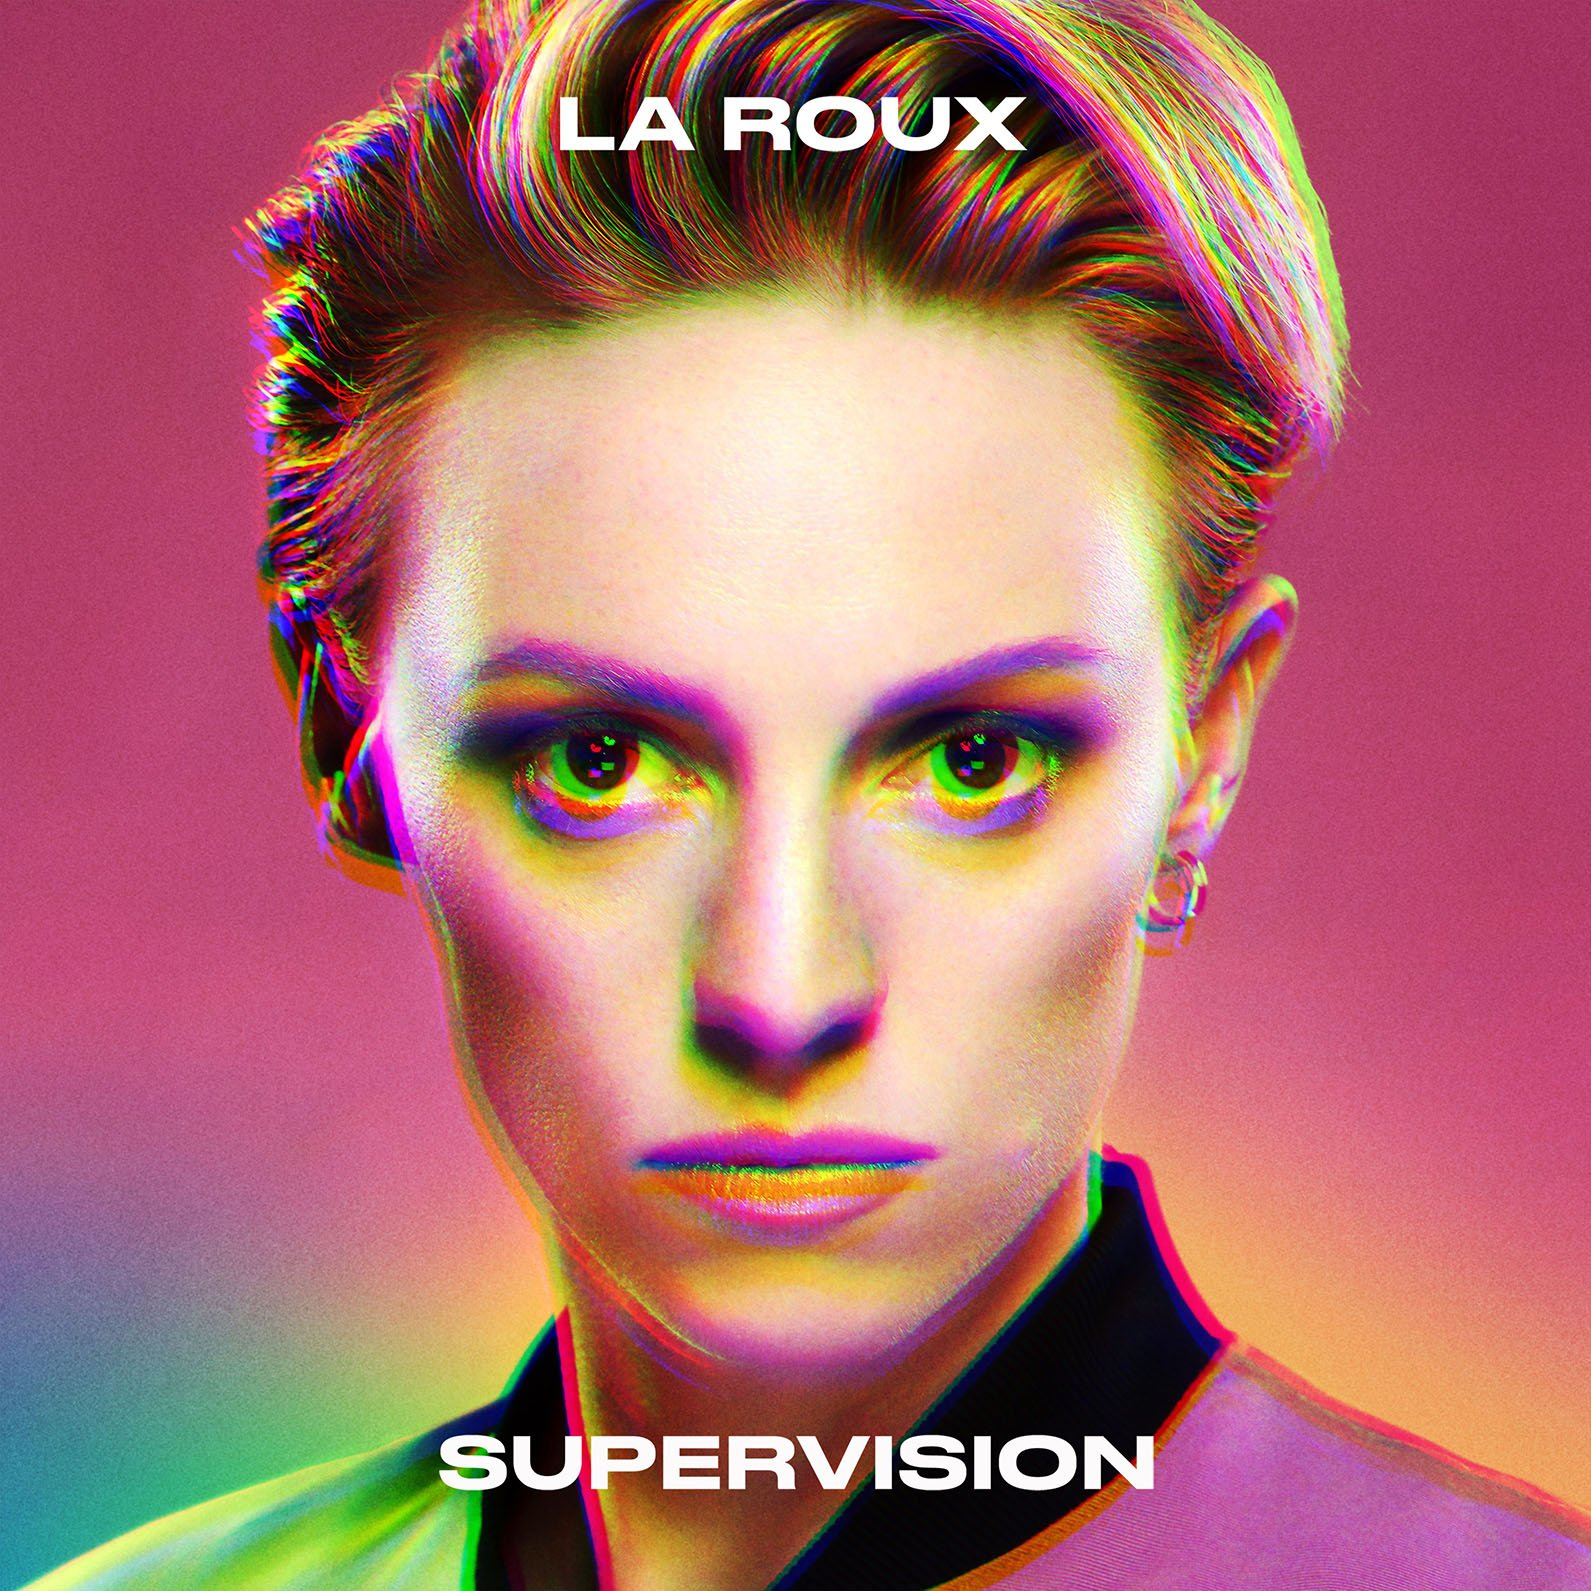 ALBUM REVIEW: La Roux - Supervision